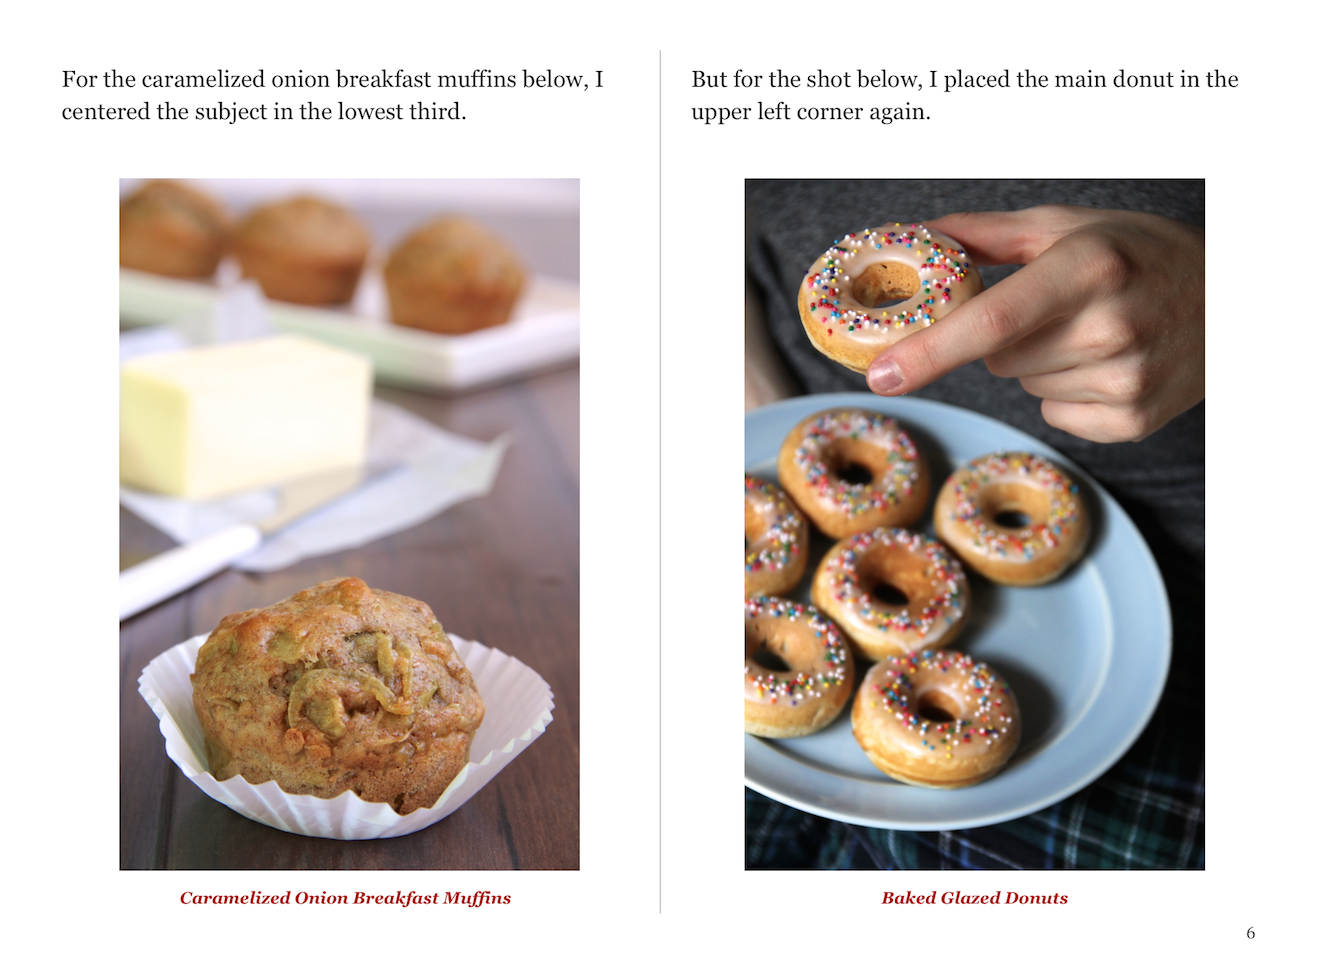 The Basics of Food Photography: Compositional Elements - Rule of Thirds Page